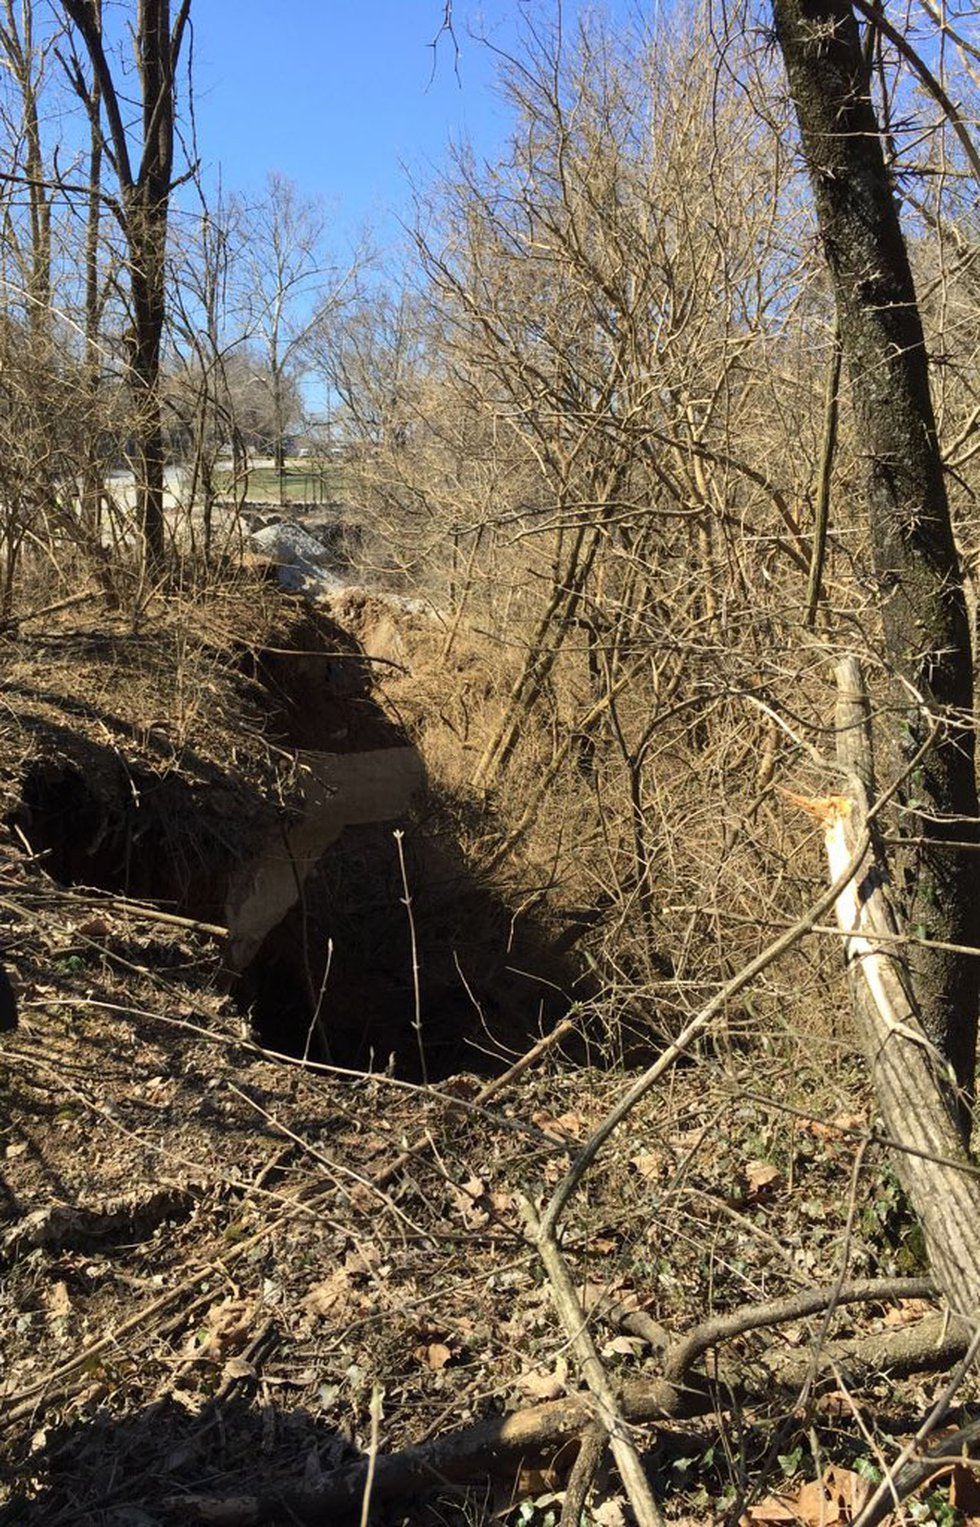 The sinkhole was found Wednesday morning by zoo staff.